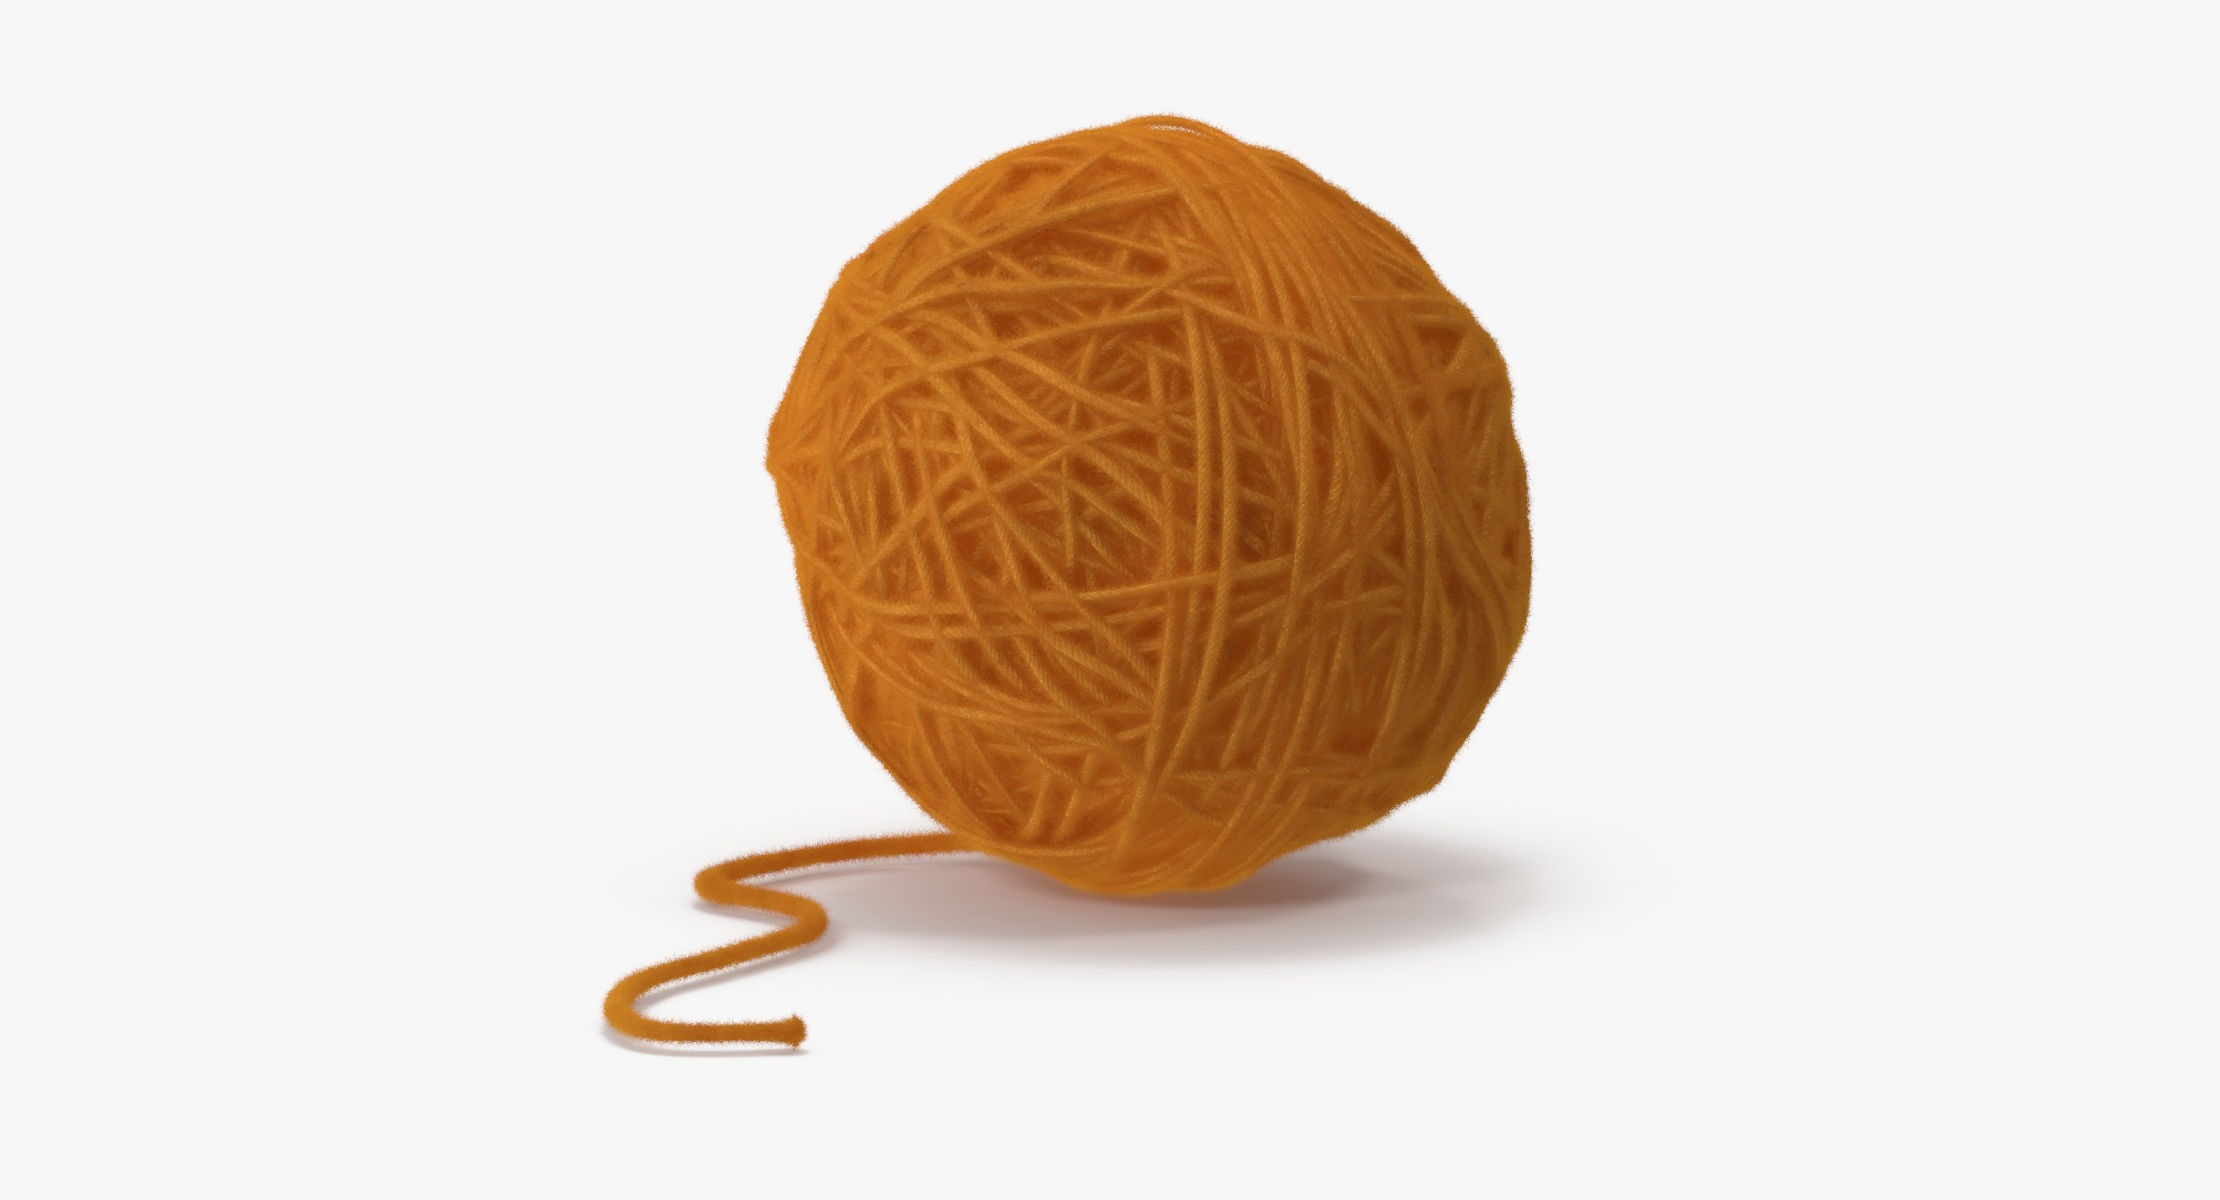 Ball of Yarn Yellow - reel 1